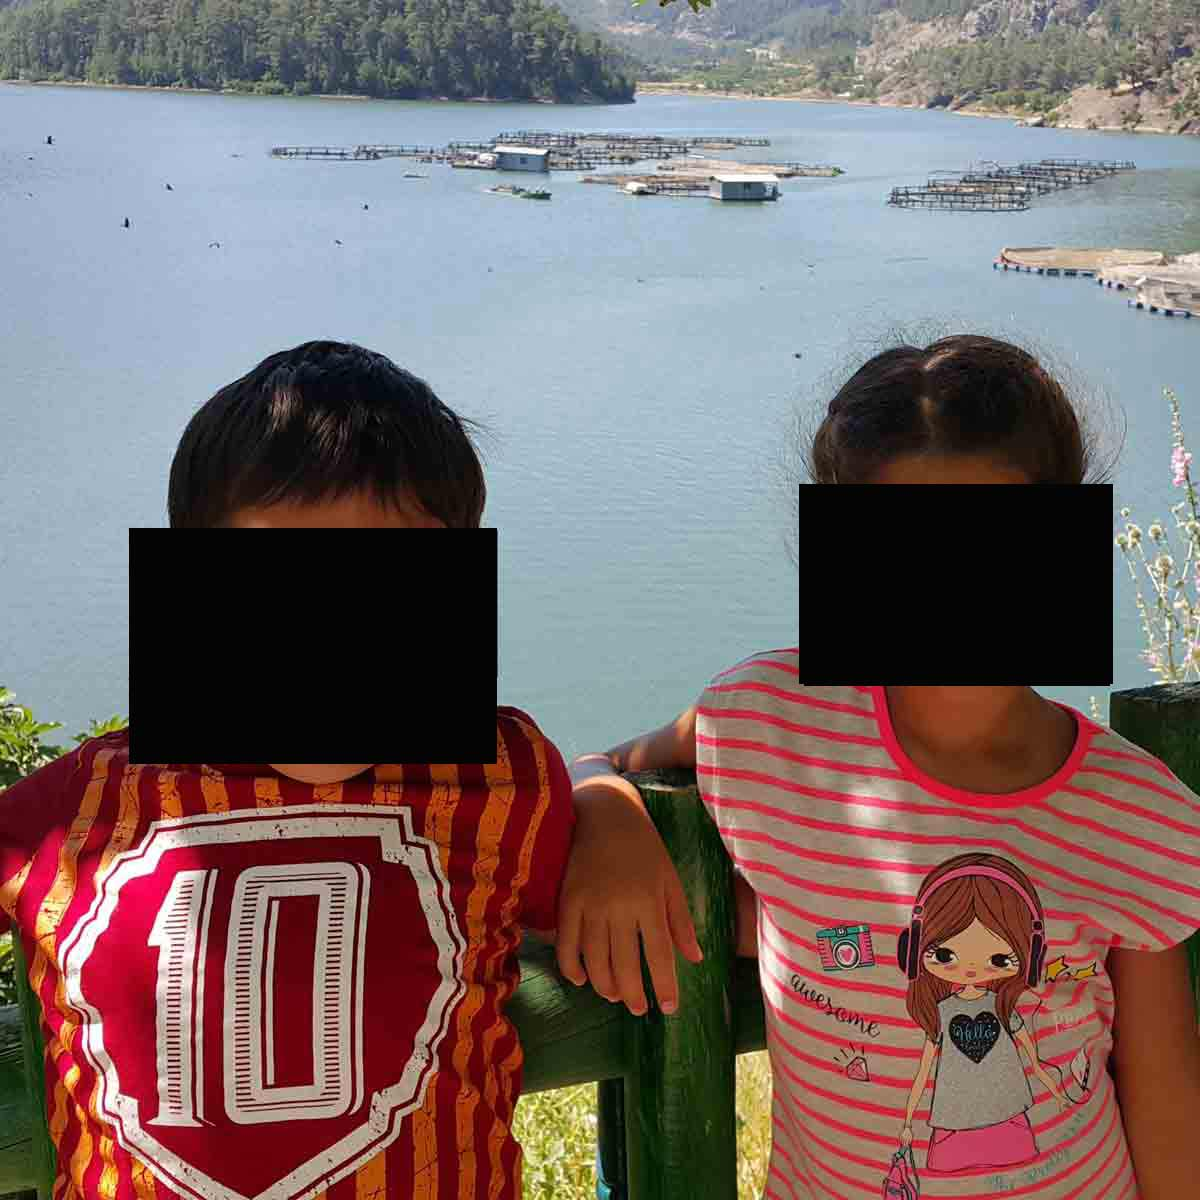 Christian kids in Muslim majority Turkey face an uphill battle in school.